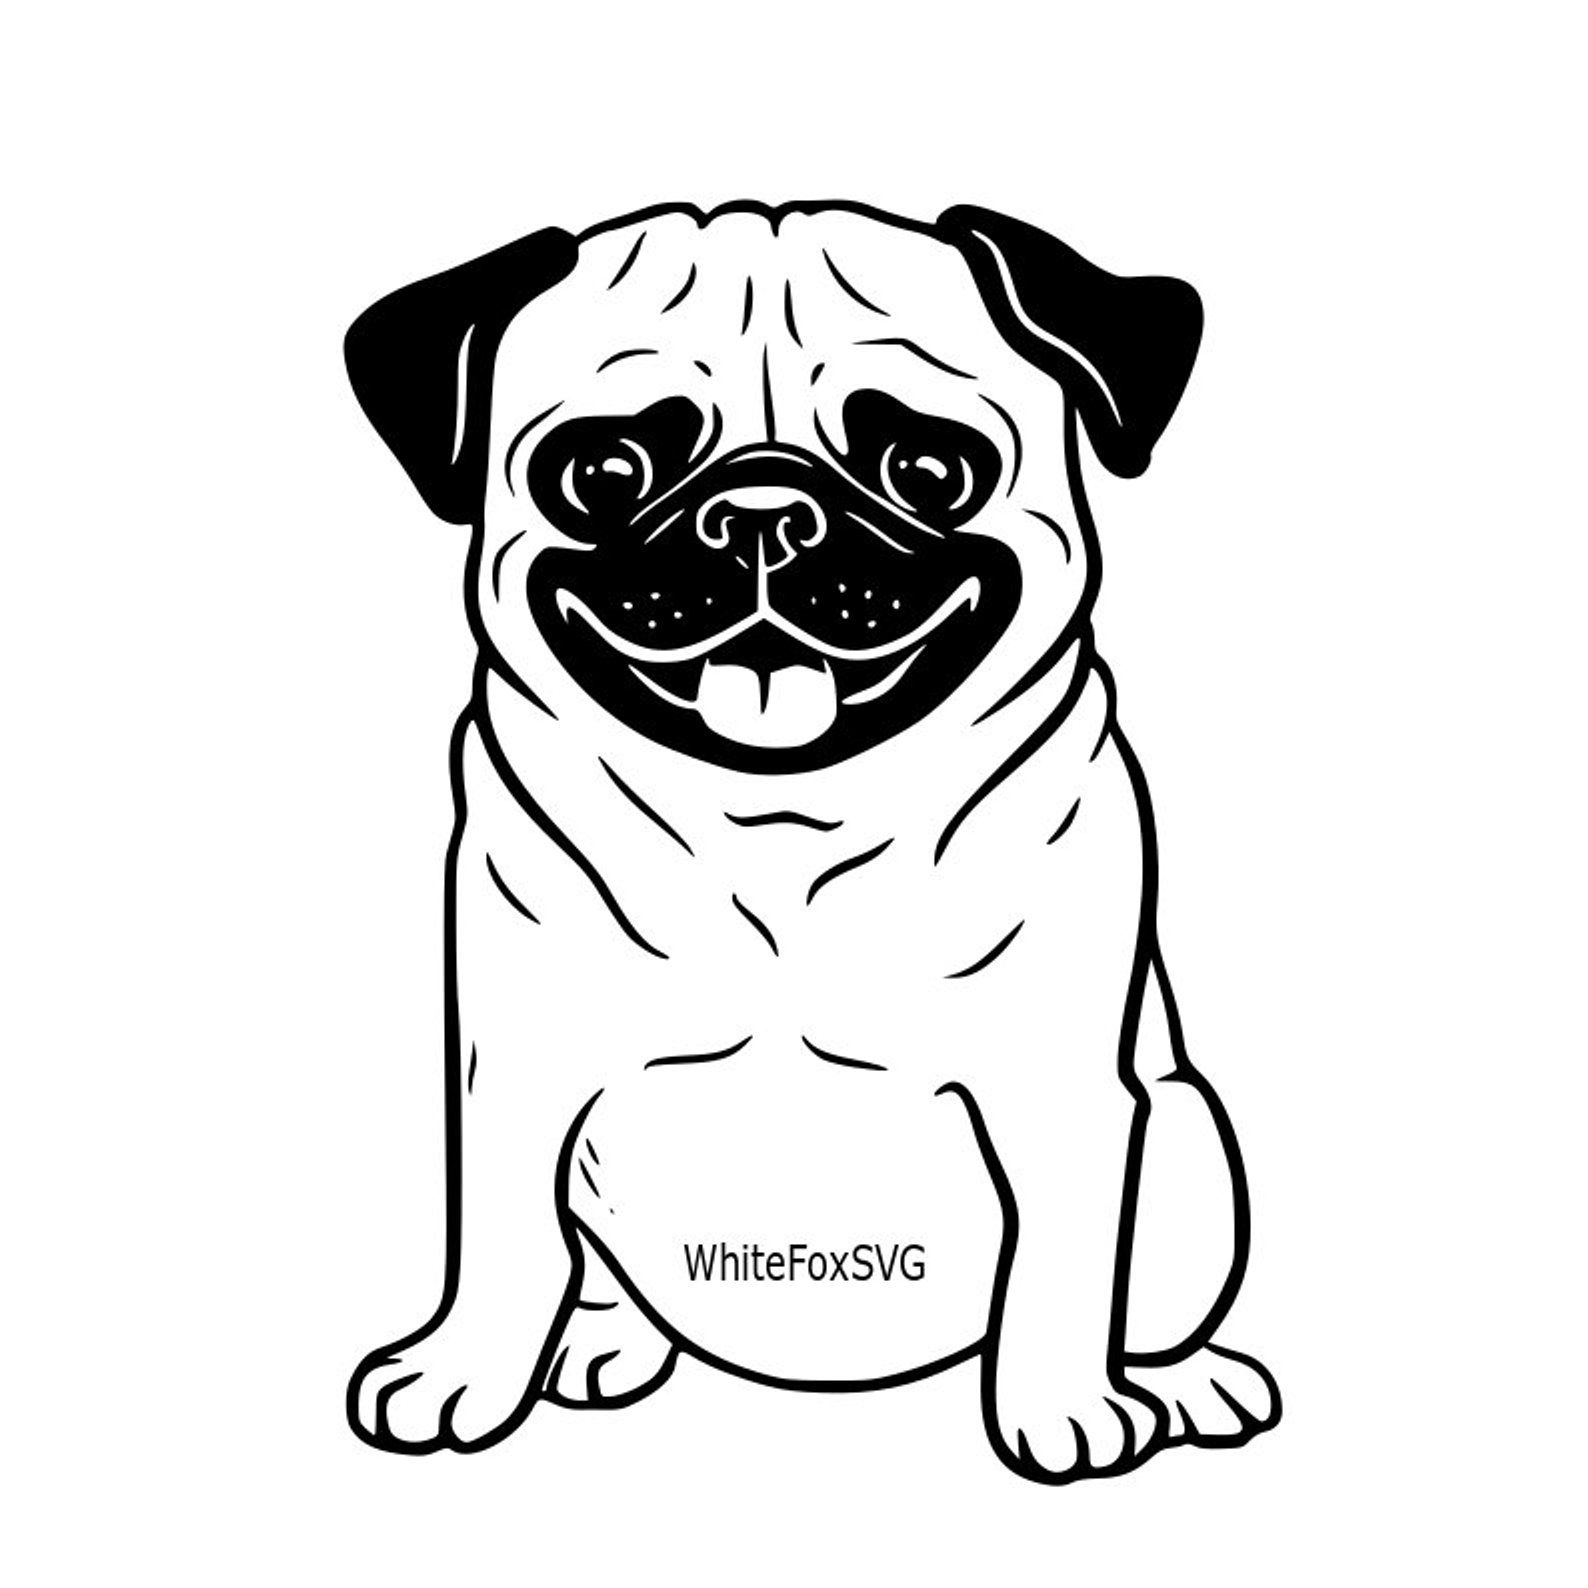 Cute happy dog clipart black and white banner free Funny cute adorable pug puppy smiling puppy SVG dog SVG ... banner free